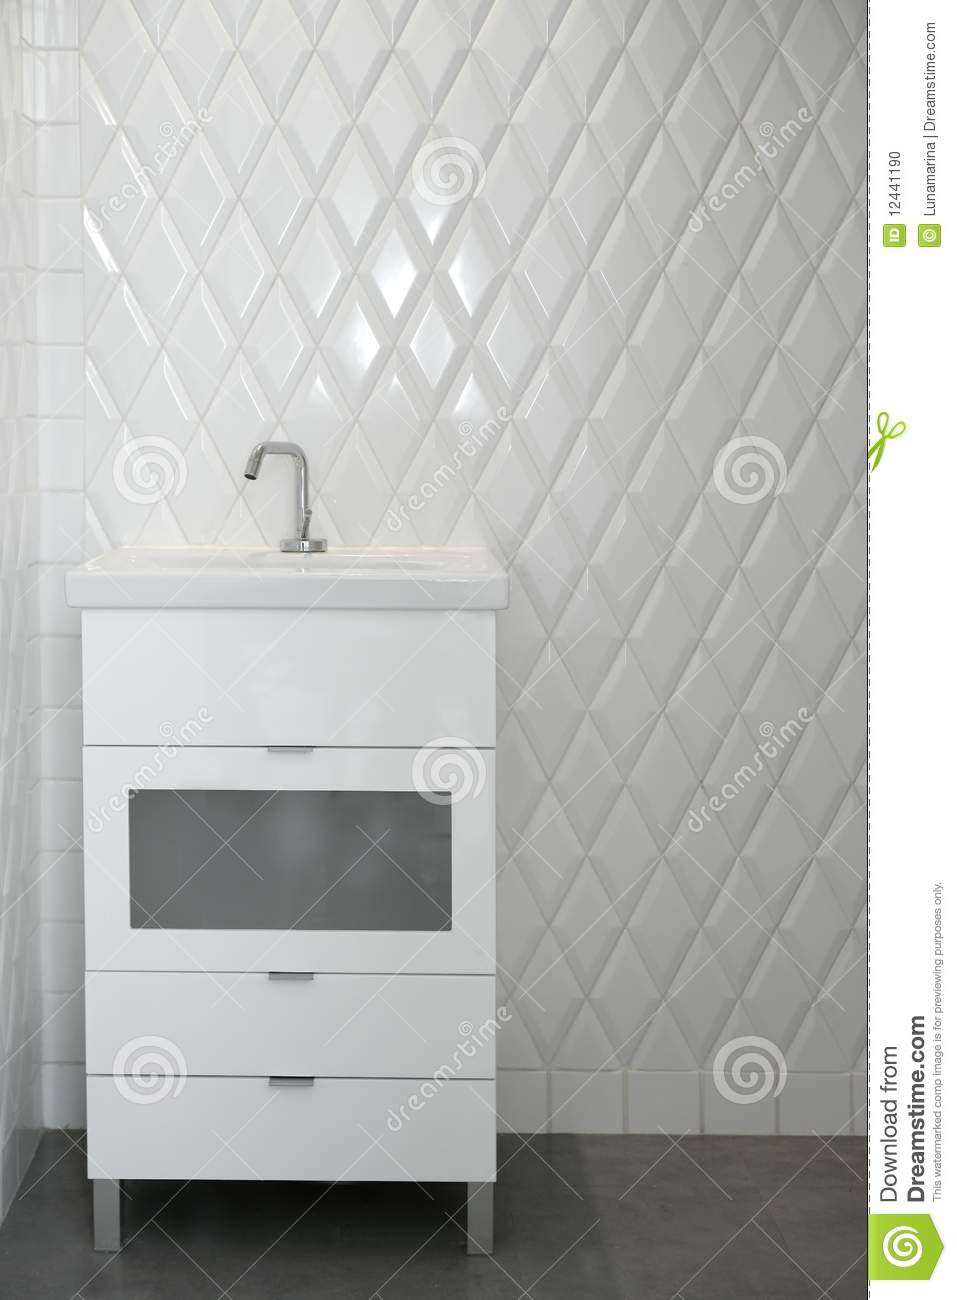 toilet-sink-white-room-diamond-shape-tiles-12441190